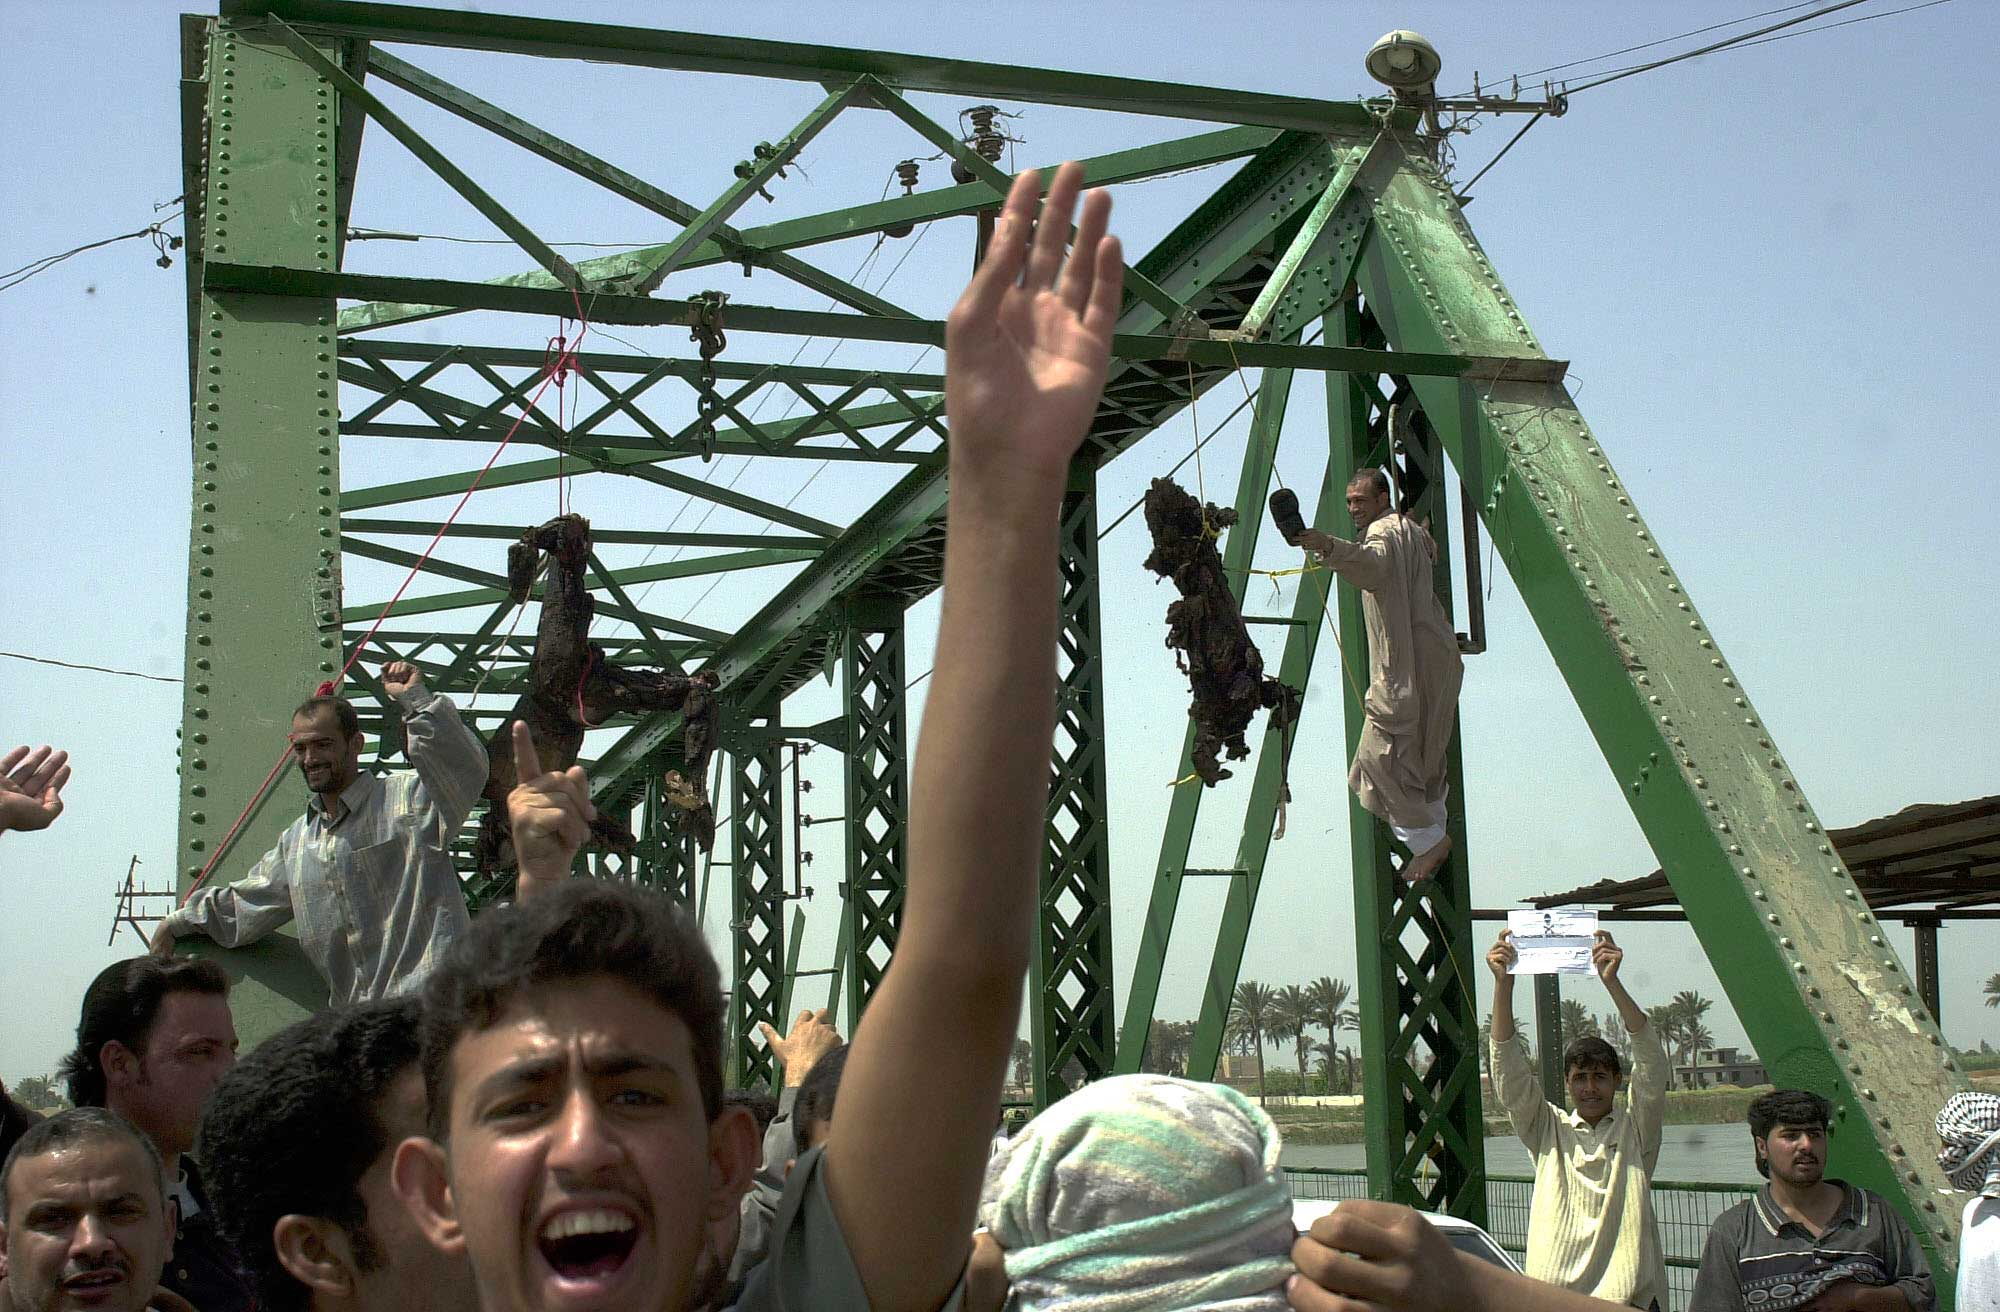 <b>Khalid Mohammed, March 31, 2004                                   </b>                                   Going to Fallujah has always been tough - it is a daily hell. I can smell the death on that day, the way people's eyes did not welcome me, the strange faces, the bodies hanging from the bridge. This was not a movie; it was a nightmare. I believe when you see someone dying and just stand watching, a part of you dies. War is ugly - all monsters, all victims.